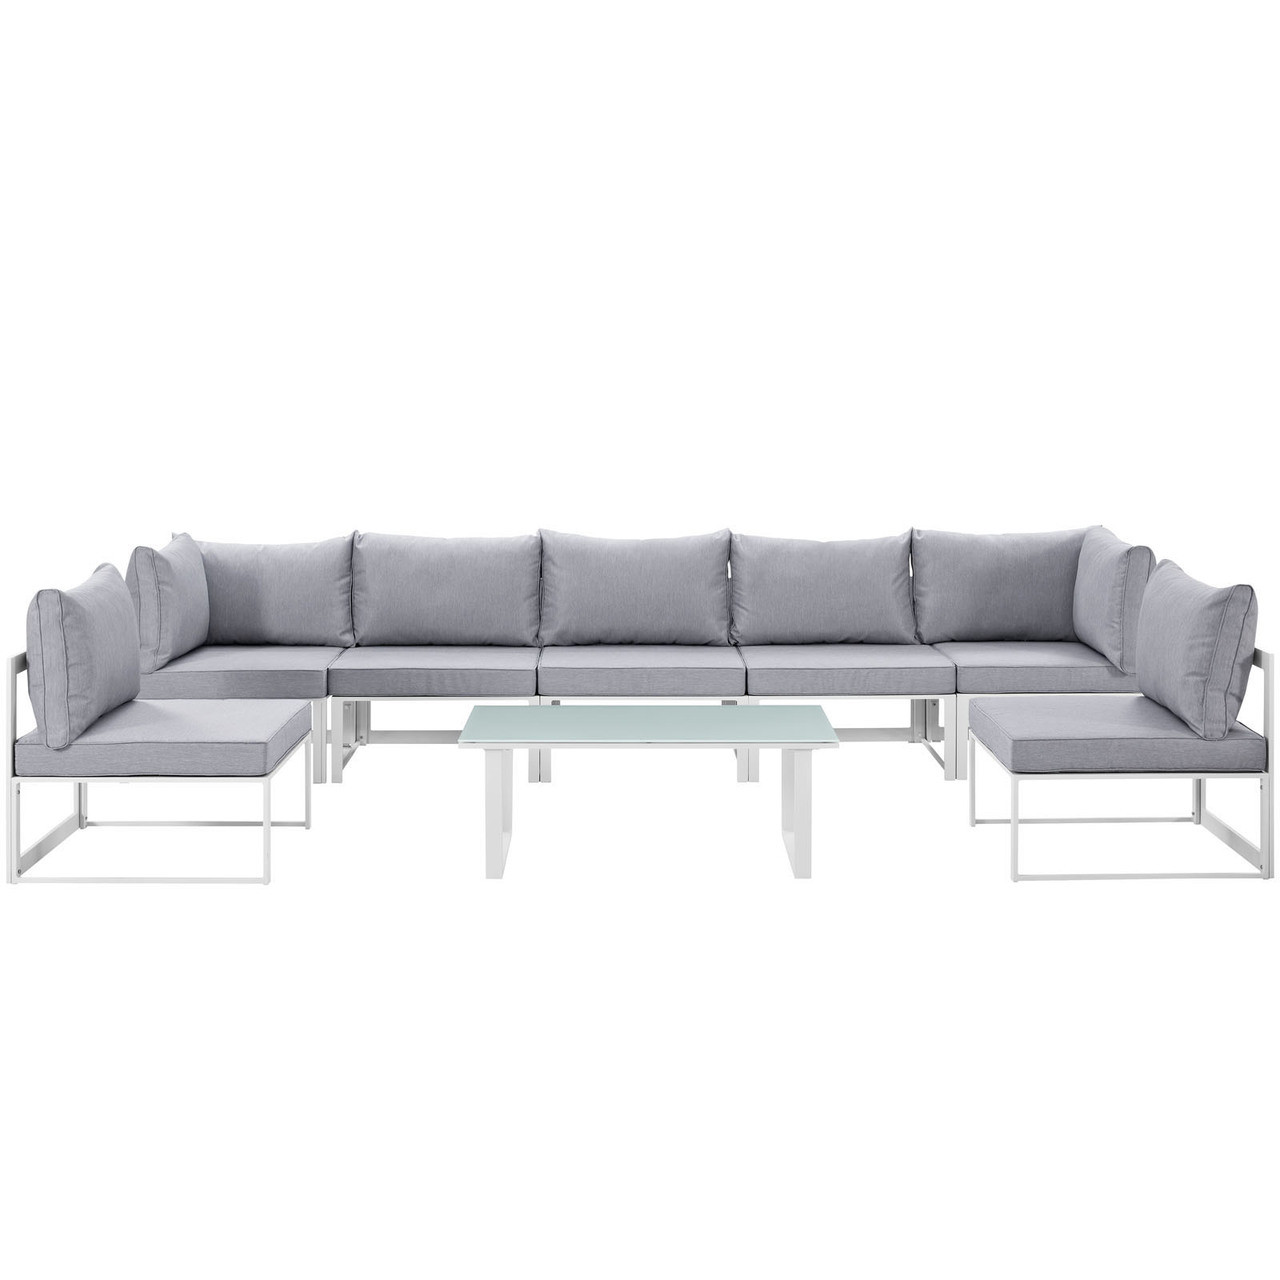 fortuna 8 piece outdoor patio sectional sofa set white grey fabric steel